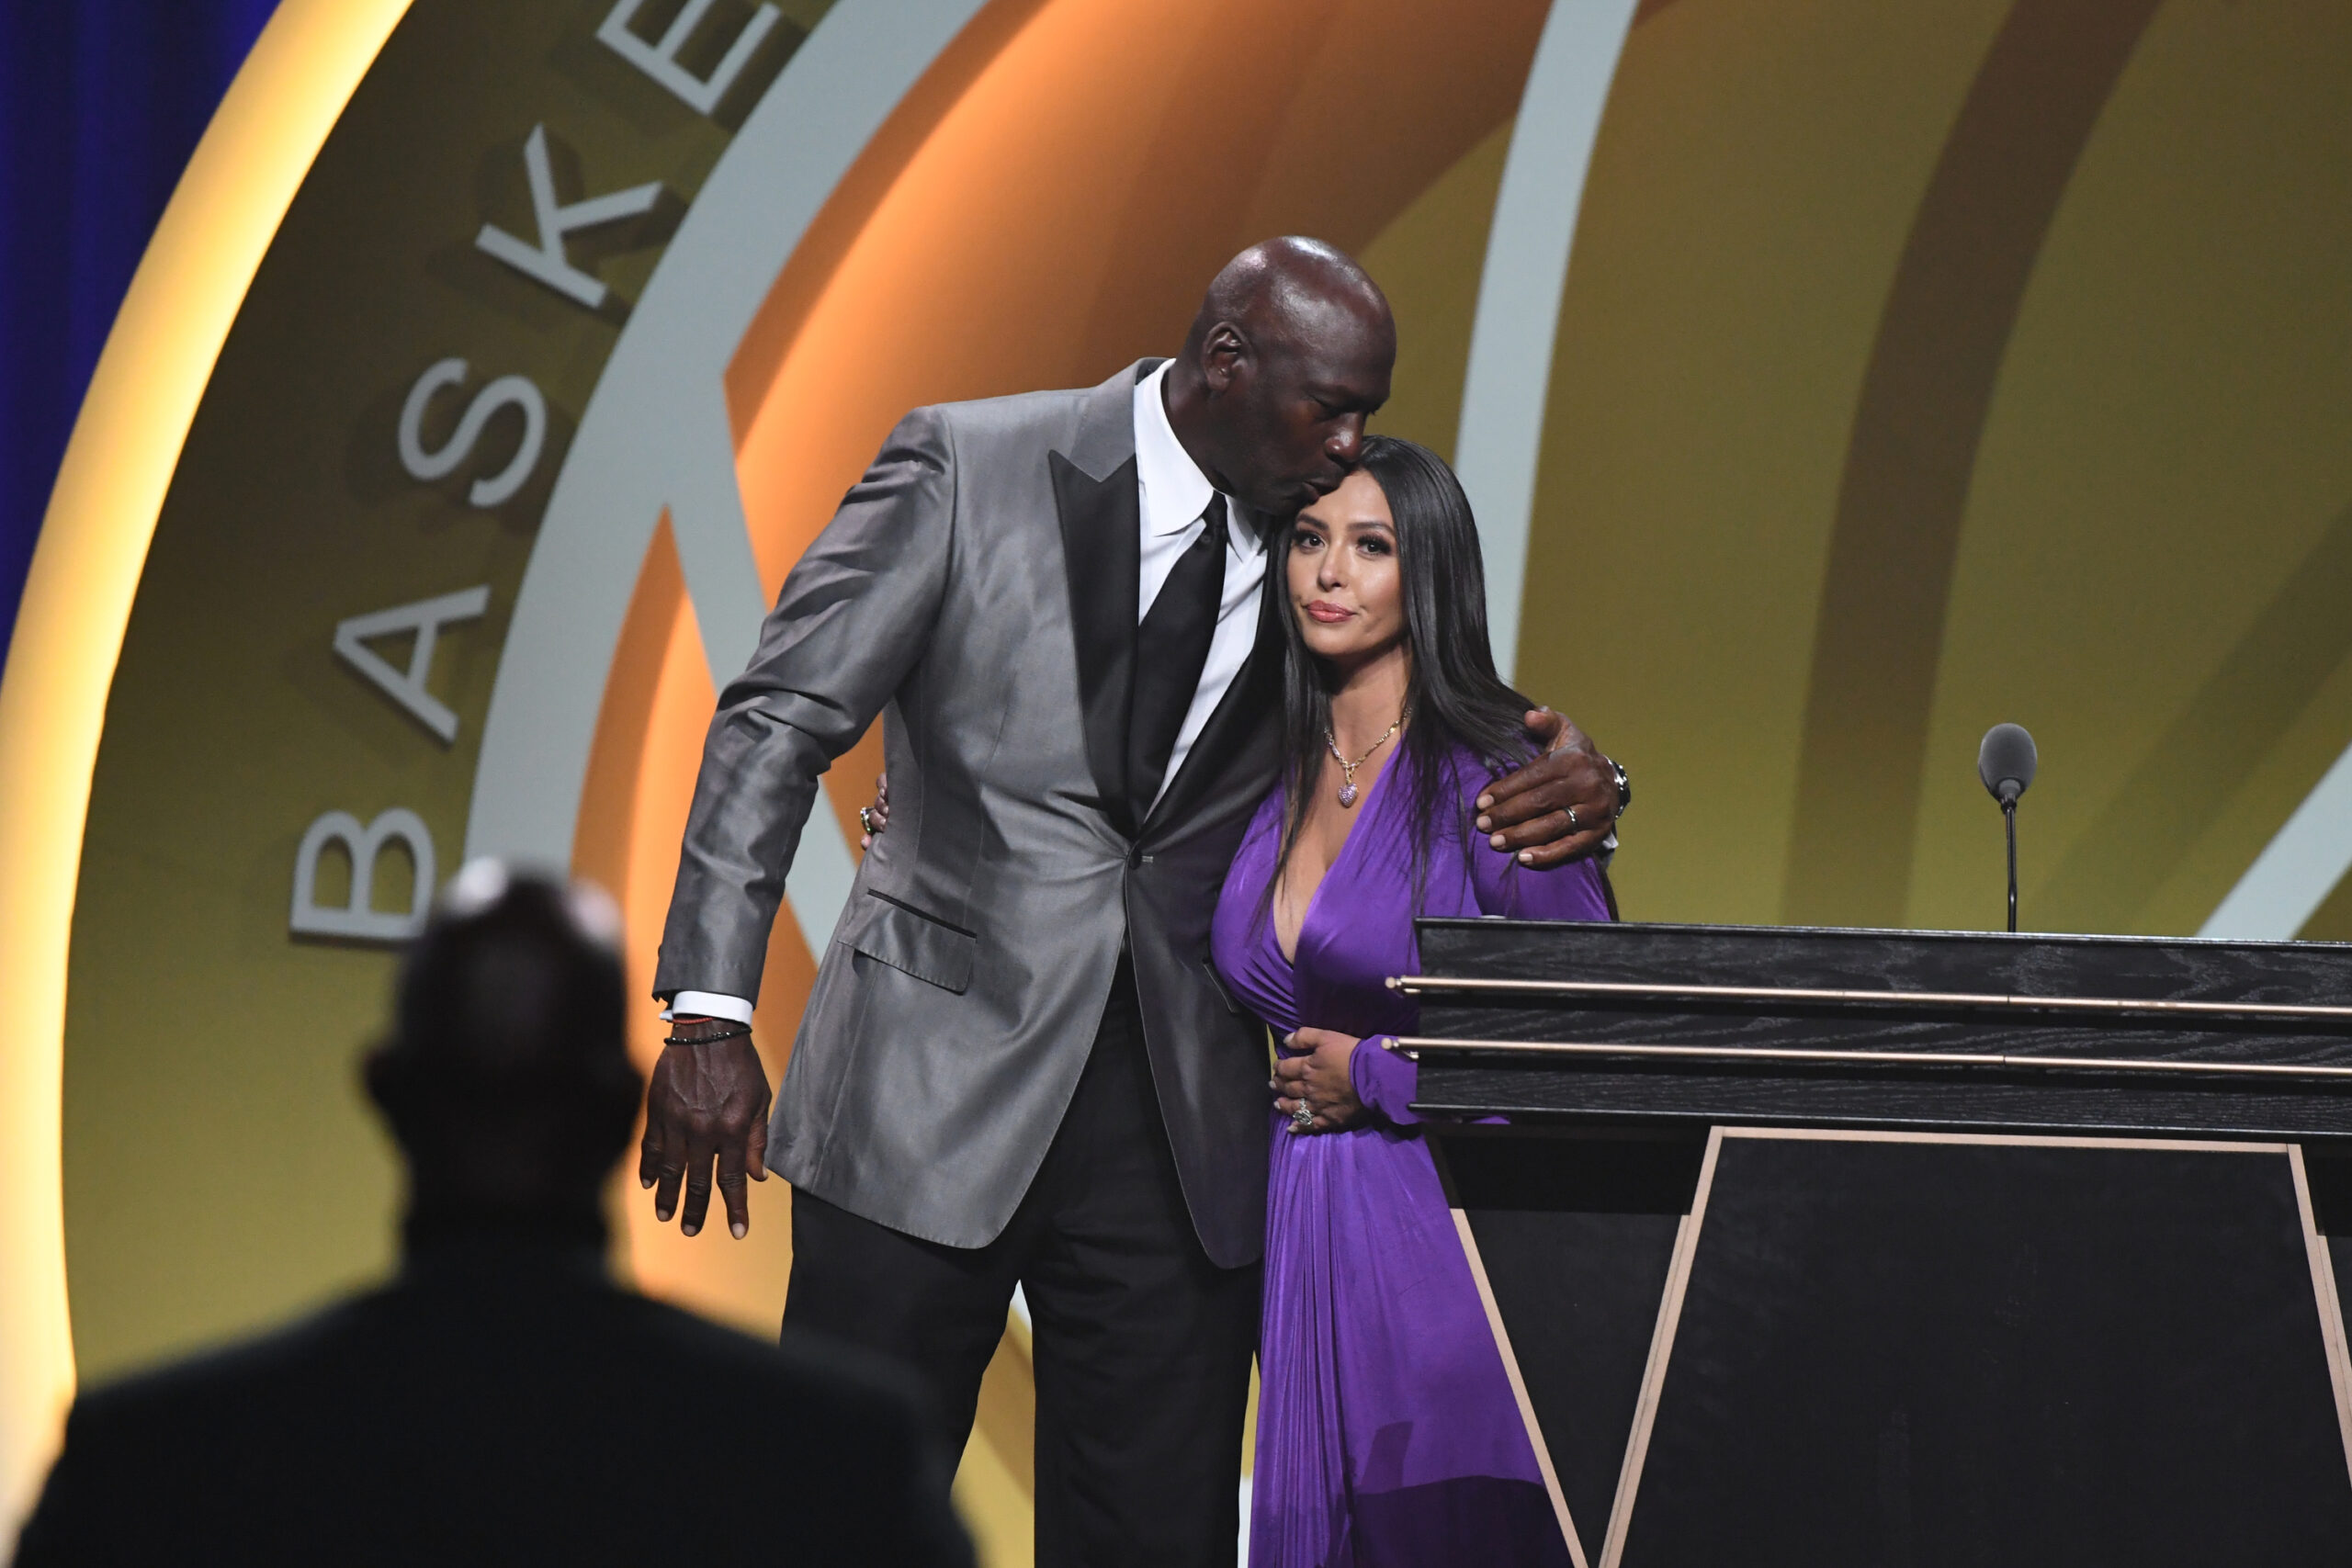 Kobe Bryant's death compounds emotion at 2020 Hall of Fame enshrinement